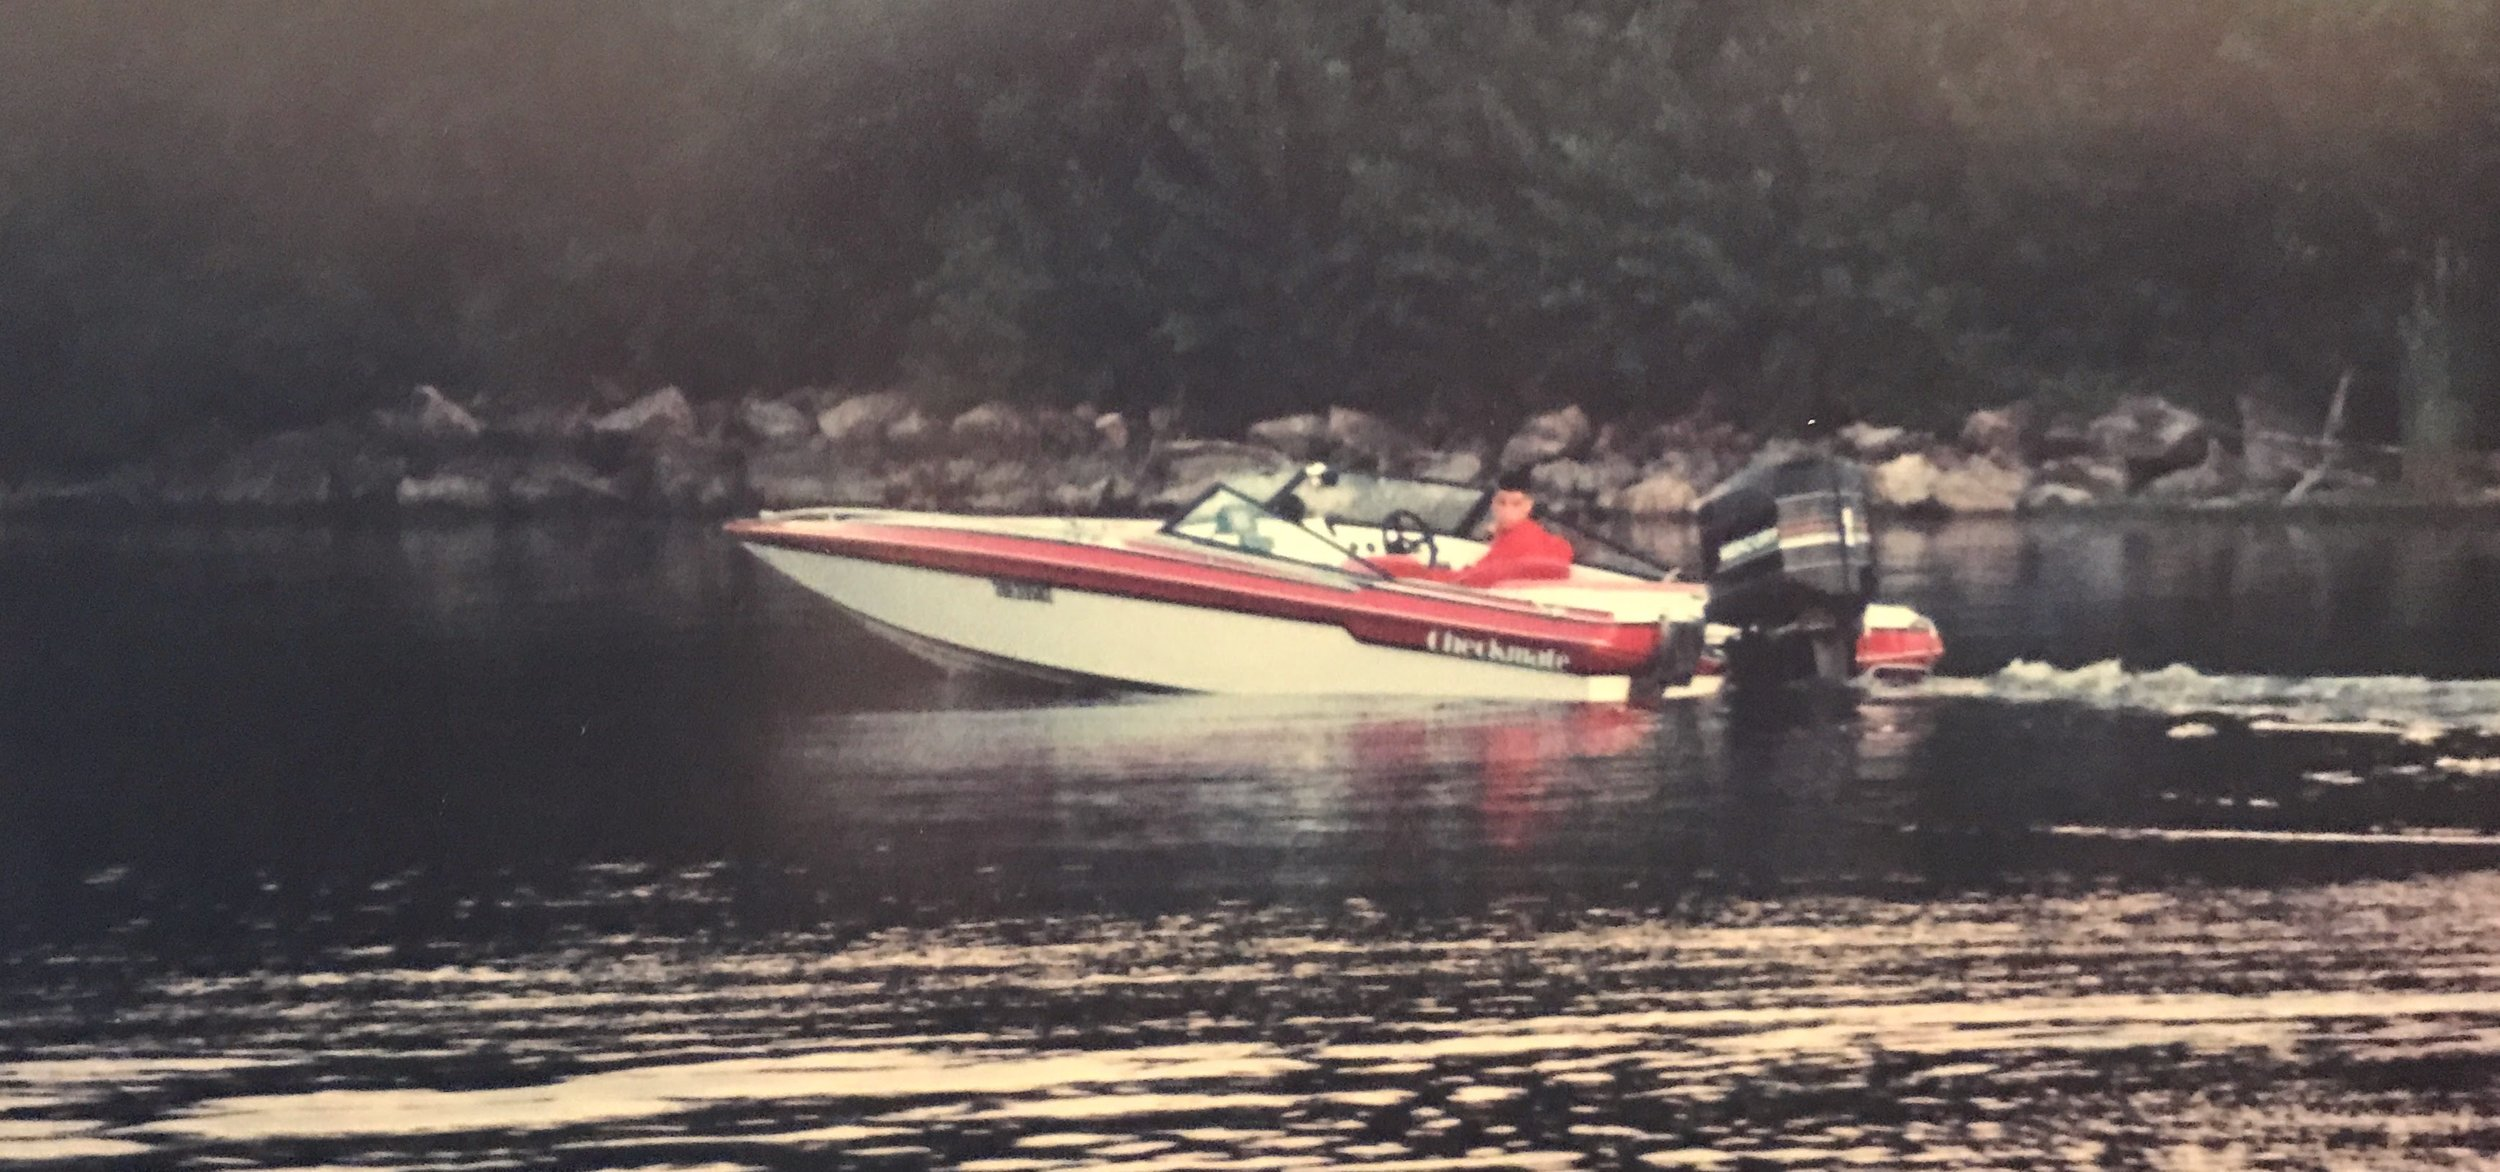 Weight - The combination of a heavy engine (3.4 Liter V6)and a low dead-rise hull, made this old Checkmate Starflite susceptible to porpoise, until adjustments were made.